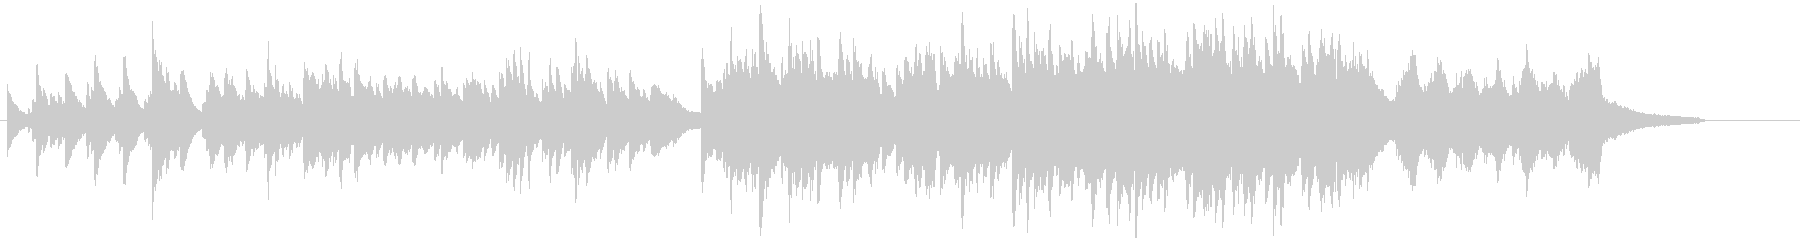 A song with the image of a soft road's unreproduced waveform